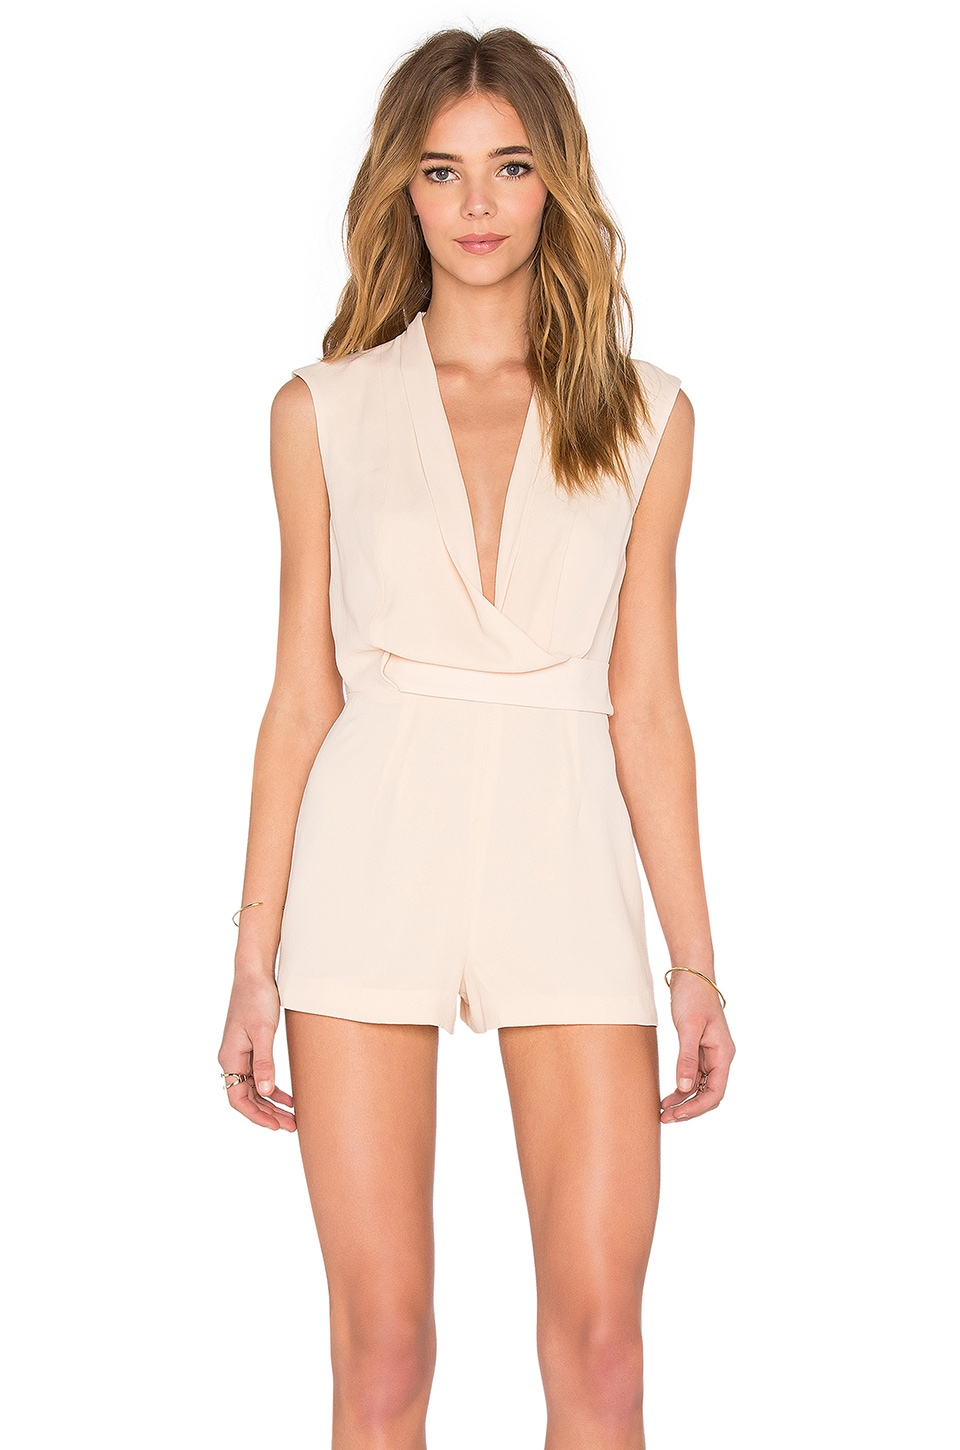 Dreaming Of You Playsuit